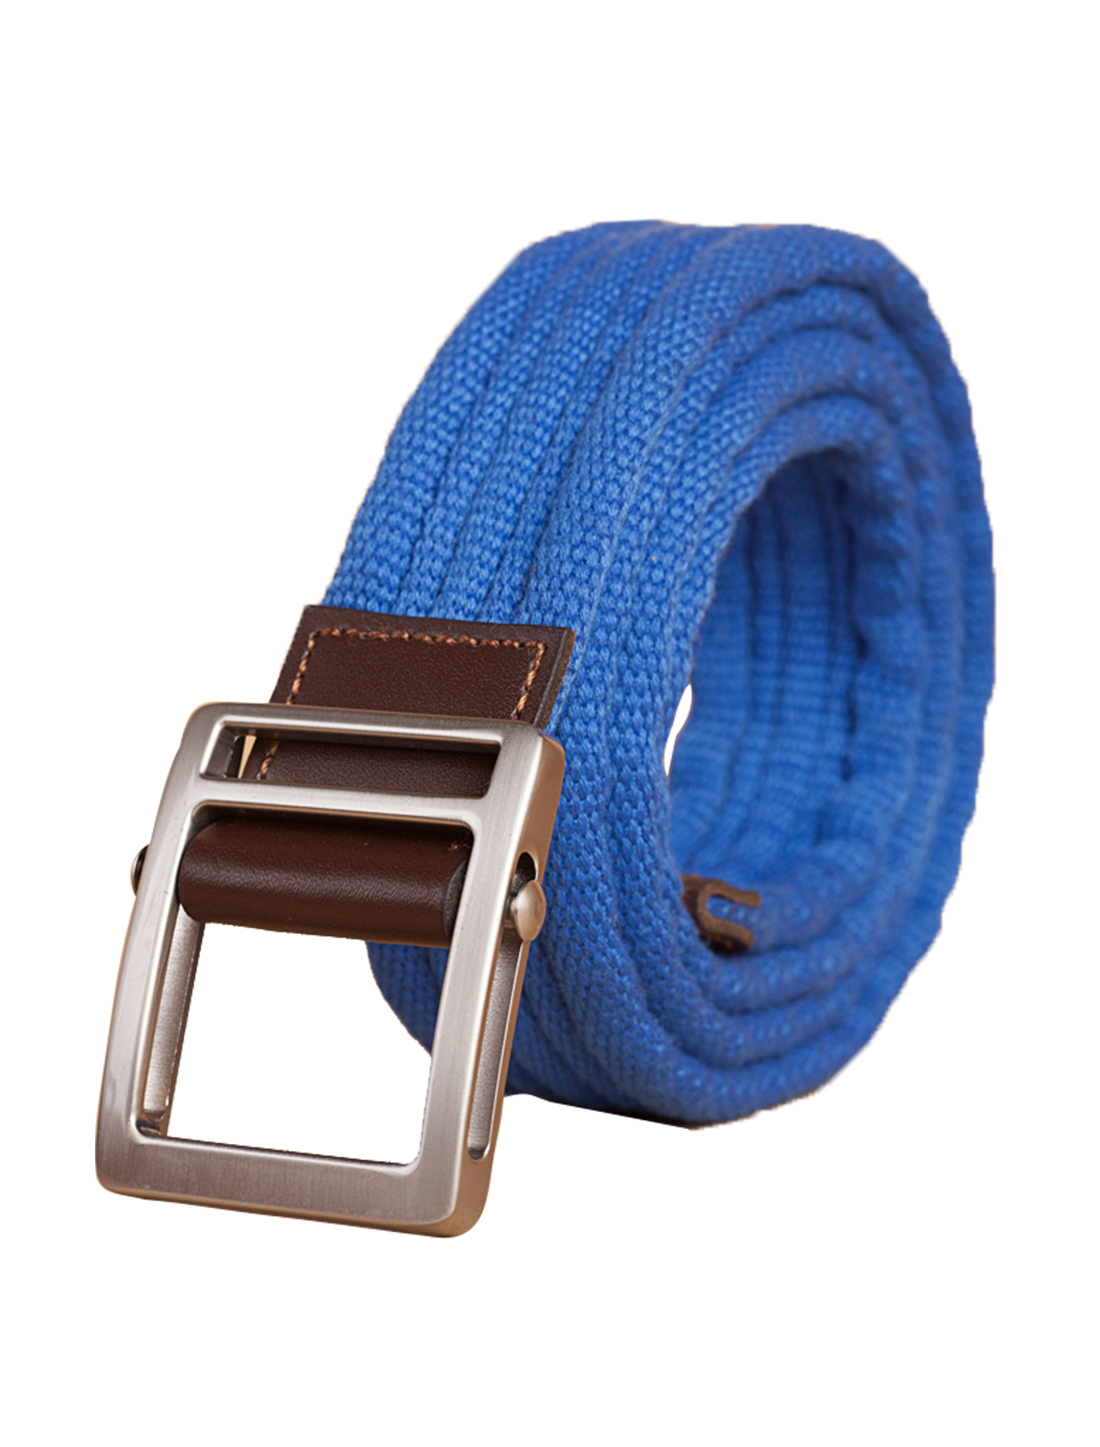 "Unisex Leather Paneled Canvas Slide Buckle Belt Width 1 5/8"" Royal"